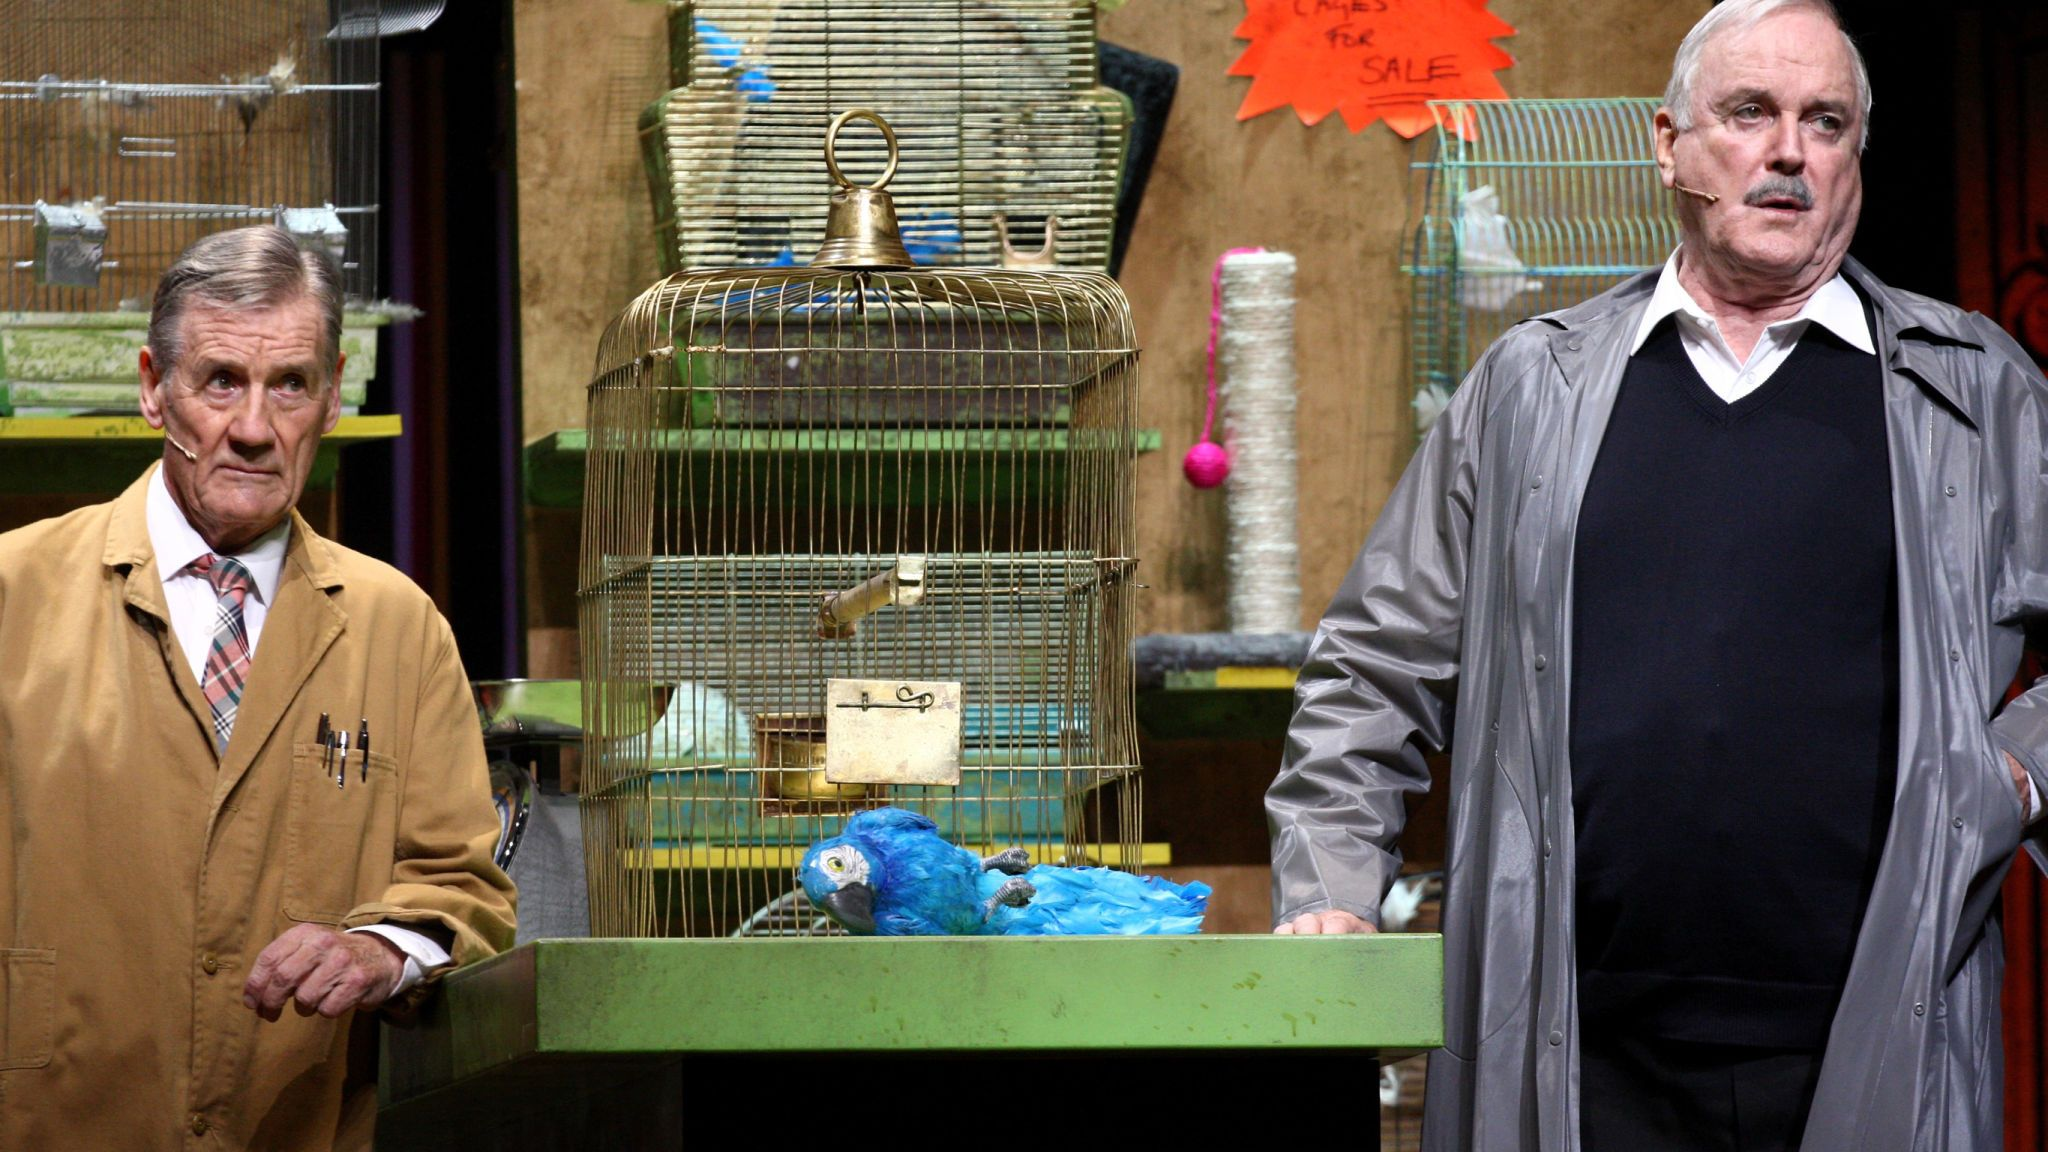 Michael Palin and John Cleese perform the famous parrot scene in 'Monty Python Live (Mostly)' in 2014